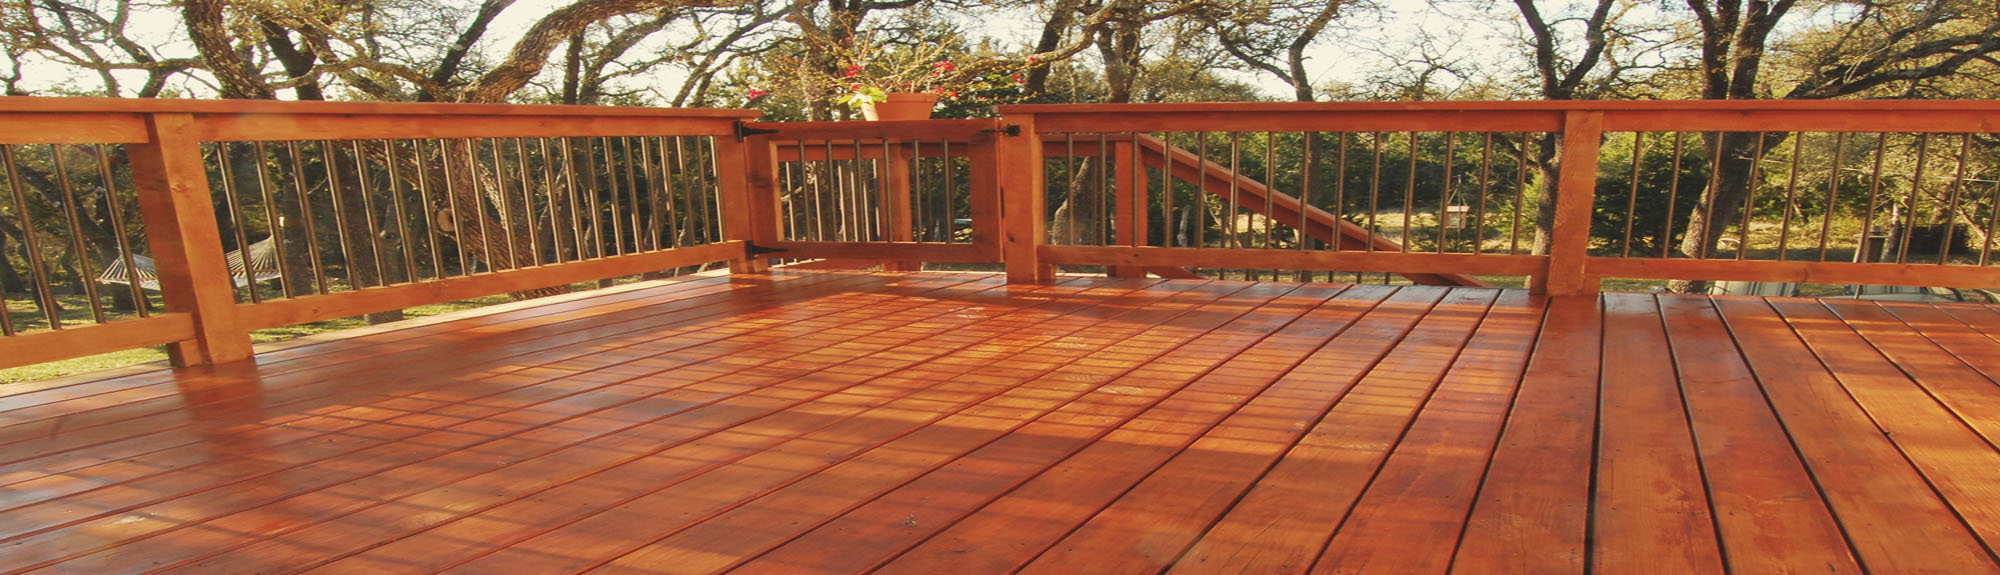 new_bigstock-Newly-Stained-Deck-2833094-copy